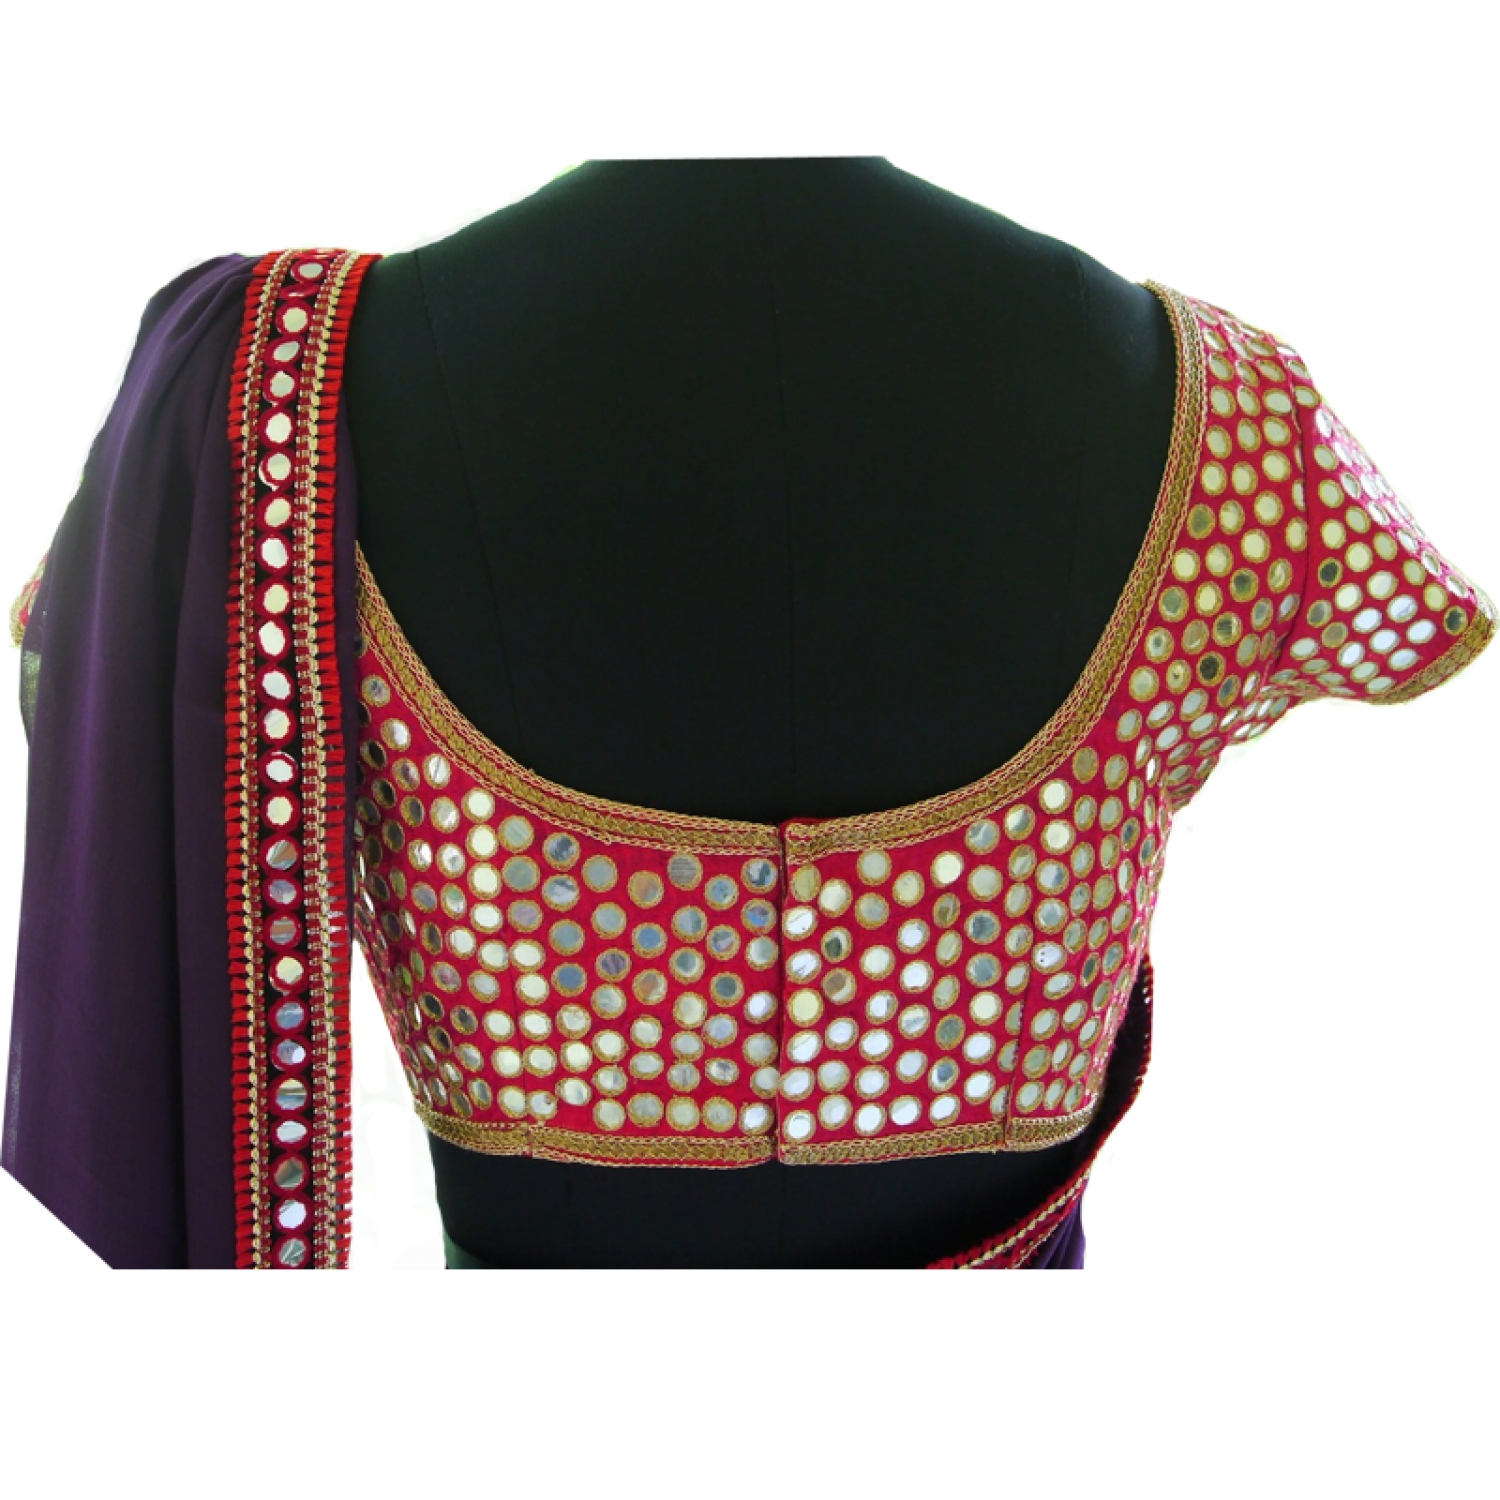 Latest Bridal Readymade Blouses Online Shopping India With Low Throughout Online Shopping Mirror (Image 12 of 20)